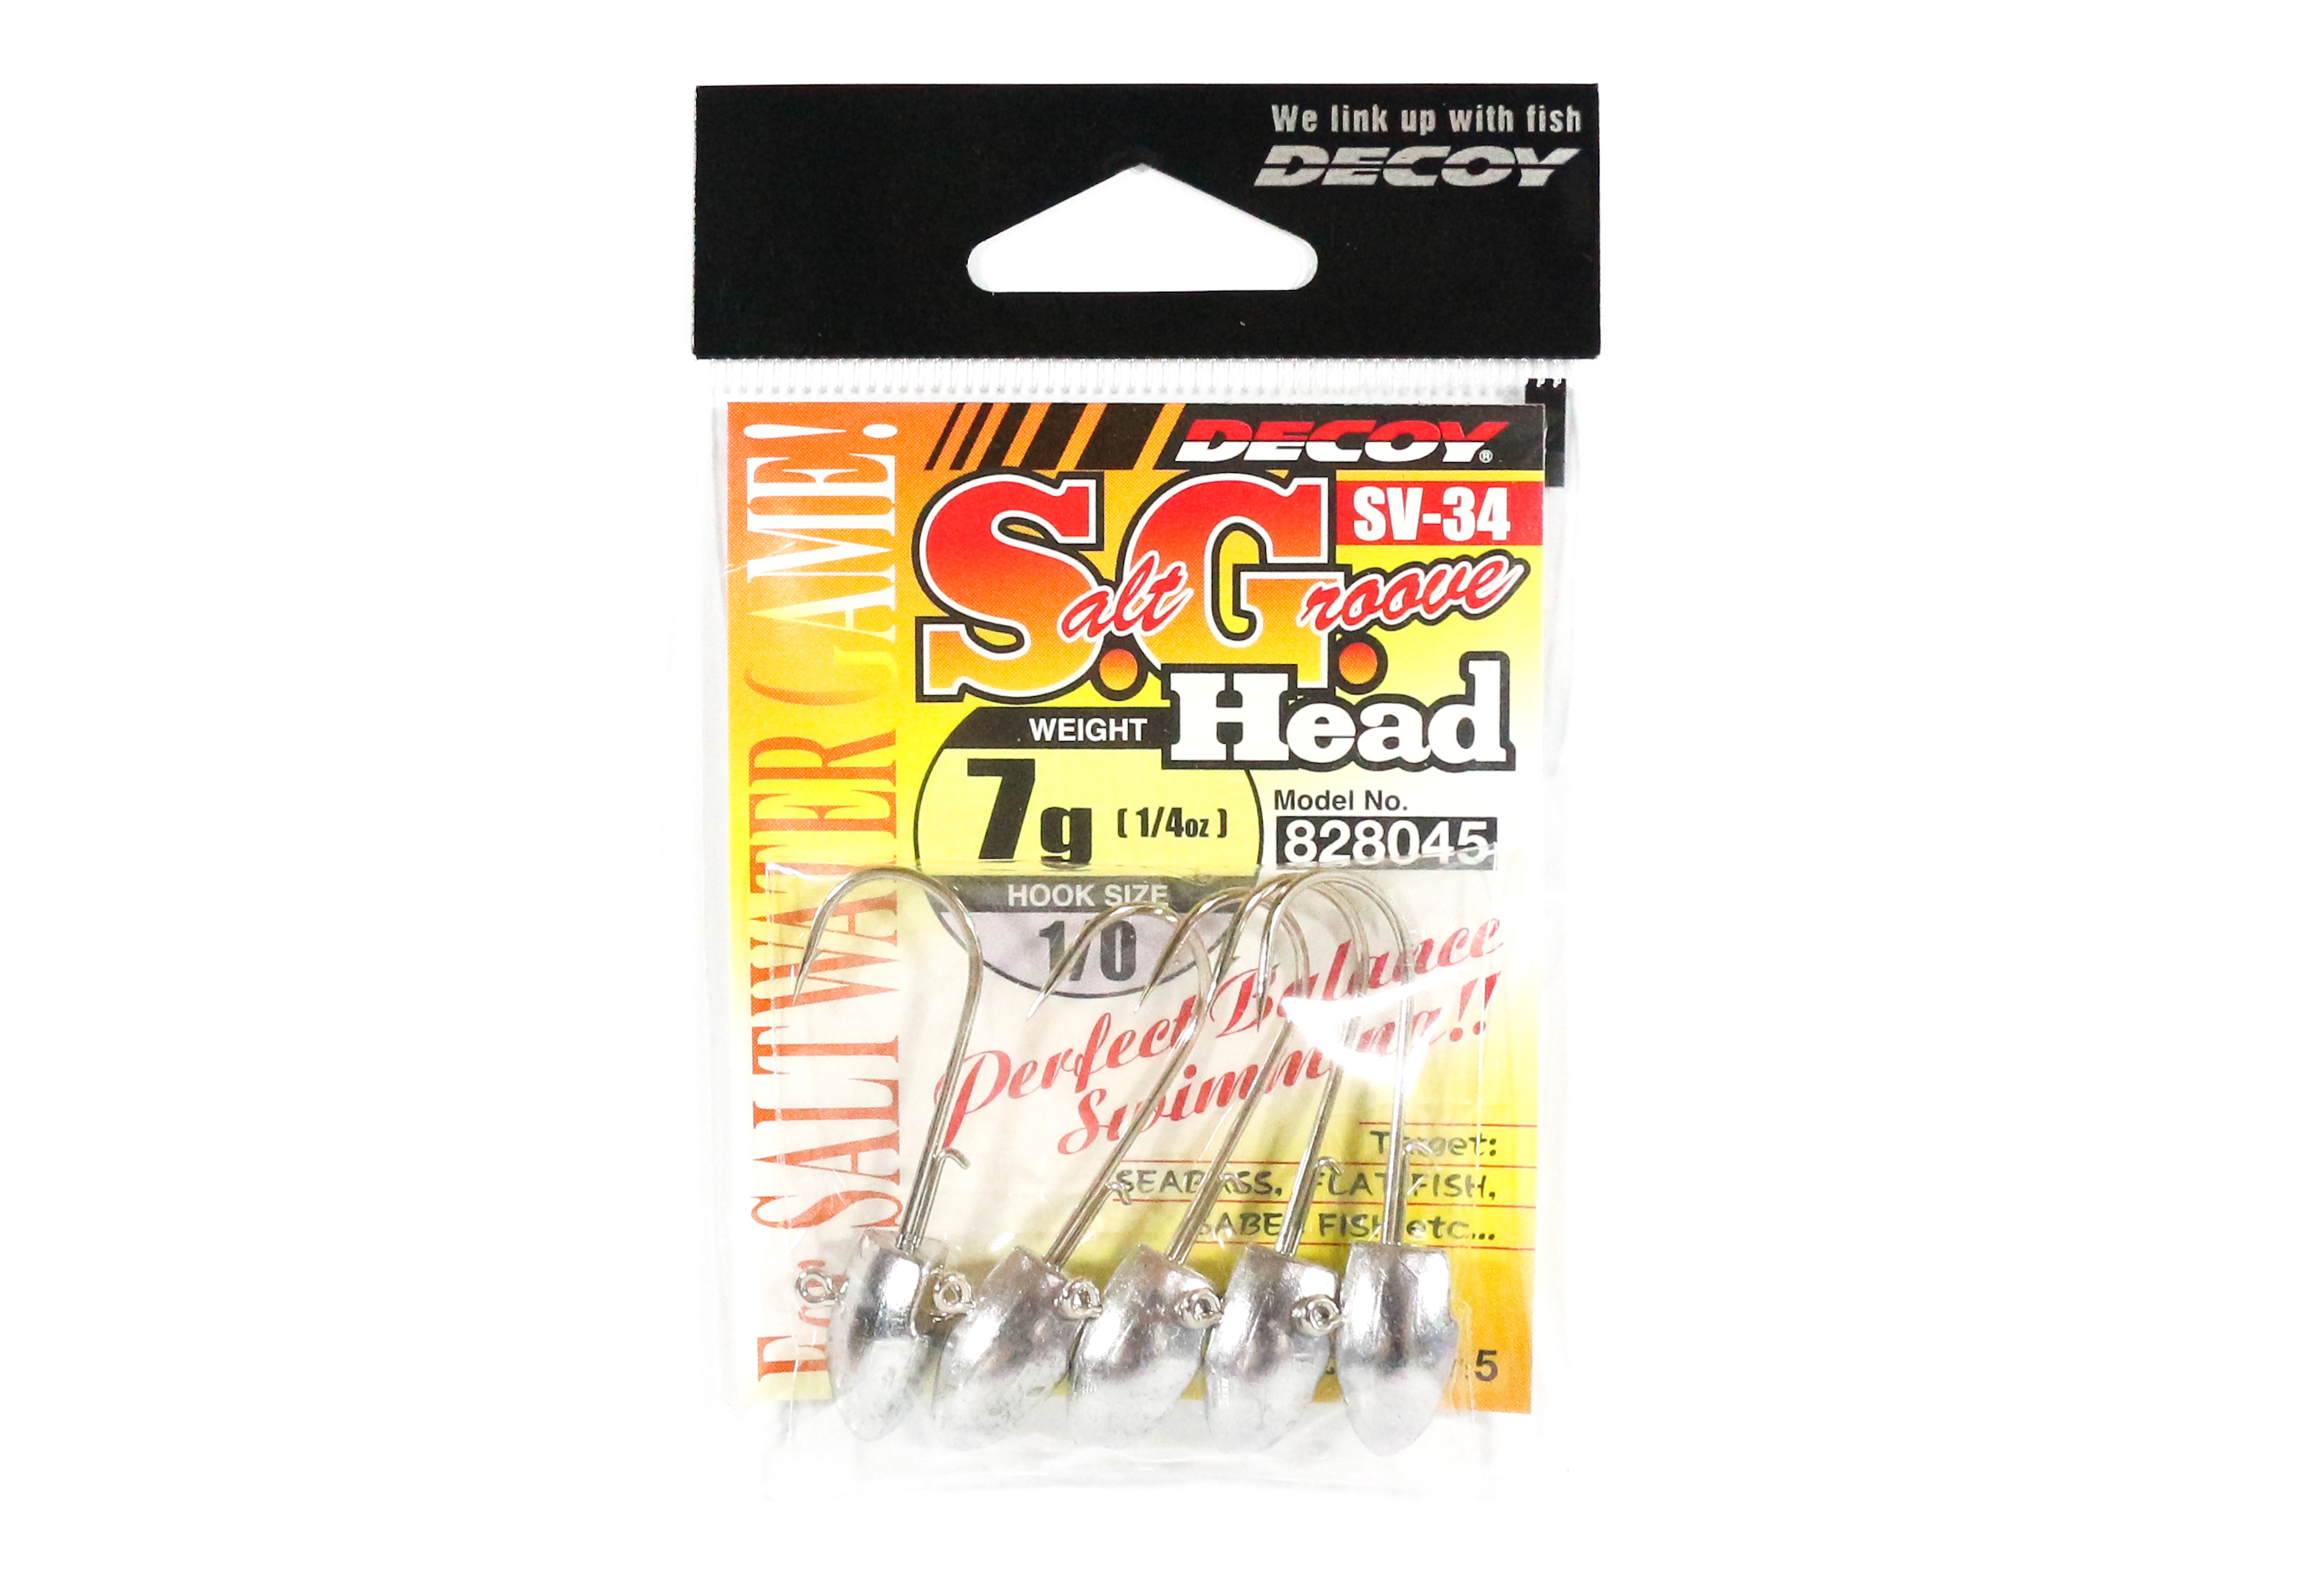 Decoy SV-34 Jig Head Salt Groove S.G Head Size 1/0 , 7 grams (8045)